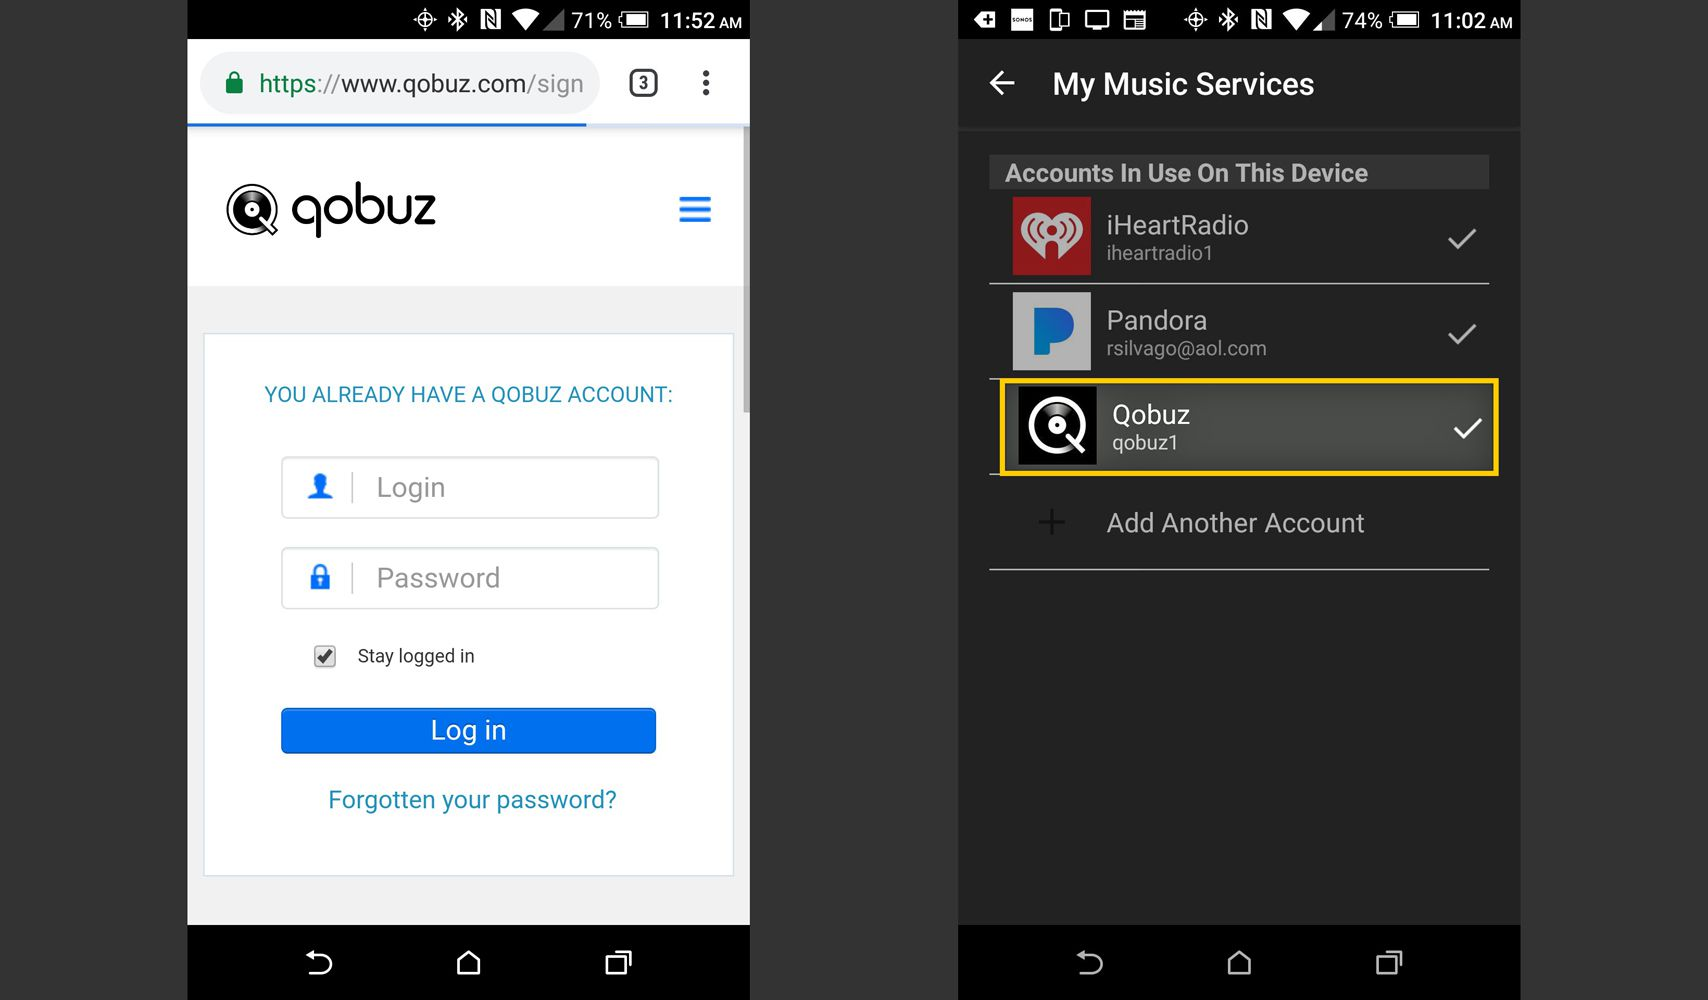 Sonos App – Qobuz Account Sign-in and Confirmation